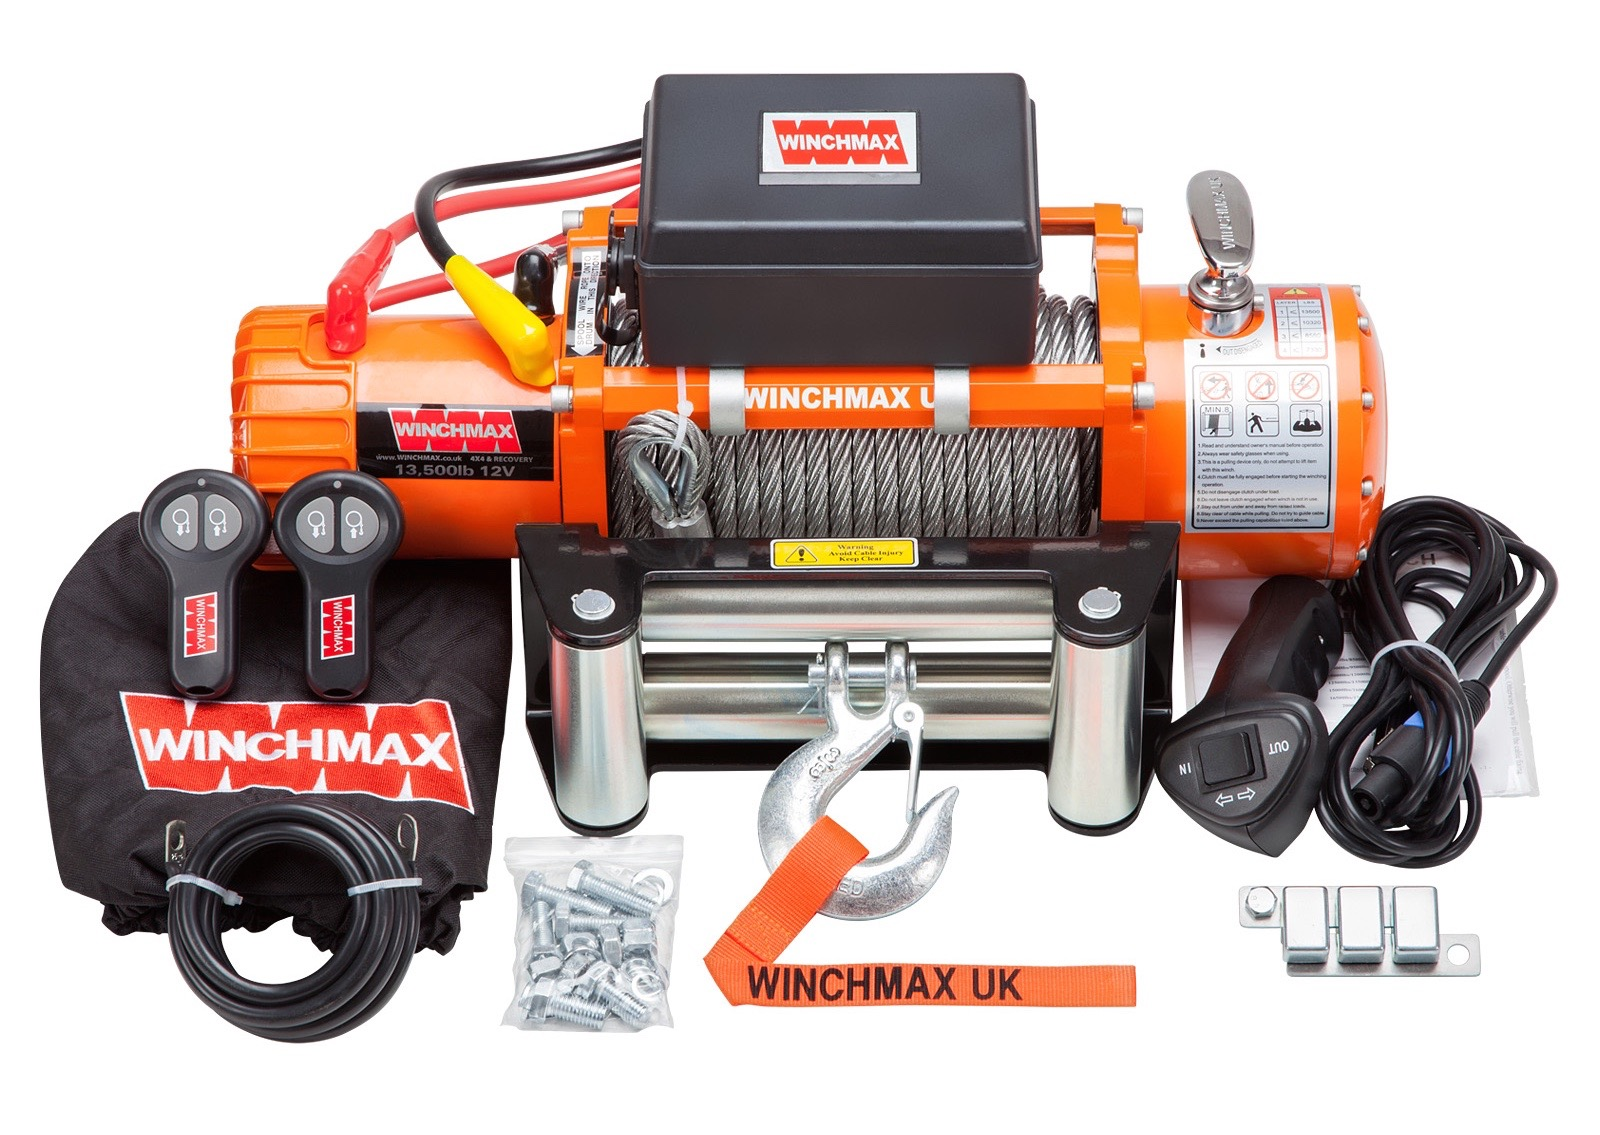 product_view.php?pid=WINCHMAX 13500LB 24V ELECTRIC STEEL CABLE WINCH WITH WIRELESS REMOTES